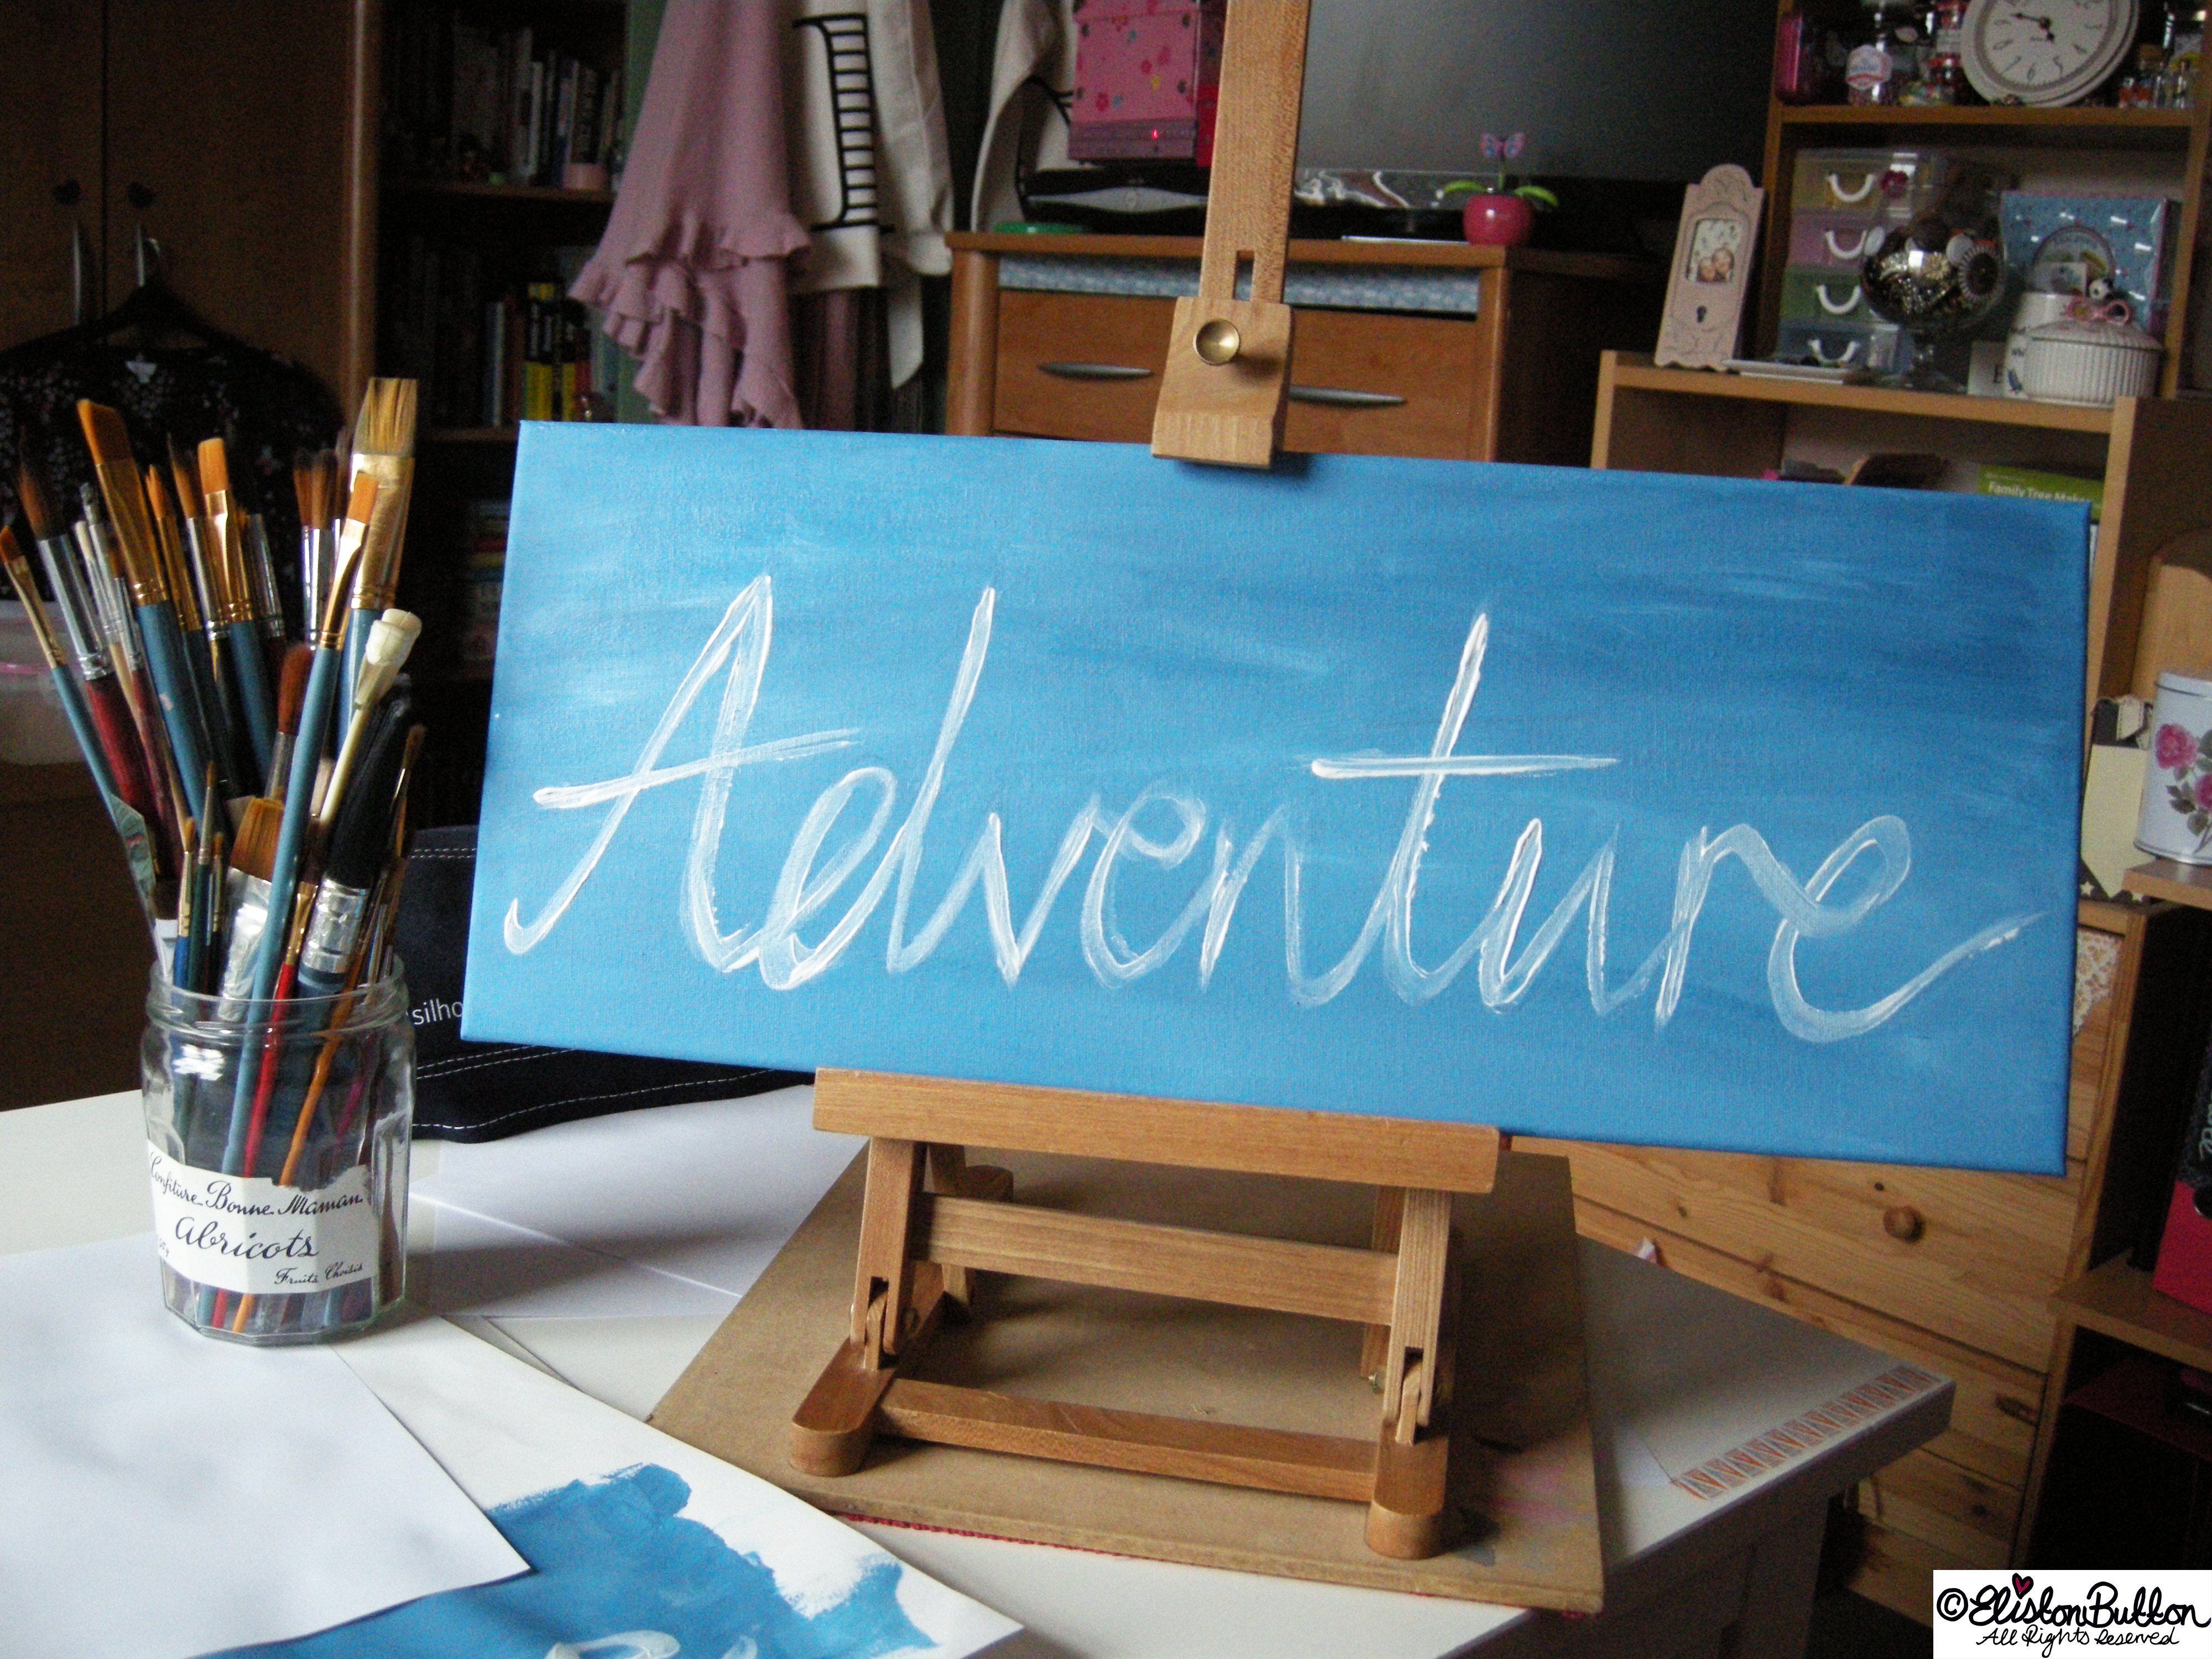 Adventure Hand Lettered Painted Canvas on a Table Easel - Always Adventure at www.elistonbutton.com - Eliston Button - That Crafty Kid – Art, Design, Craft & Adventure.